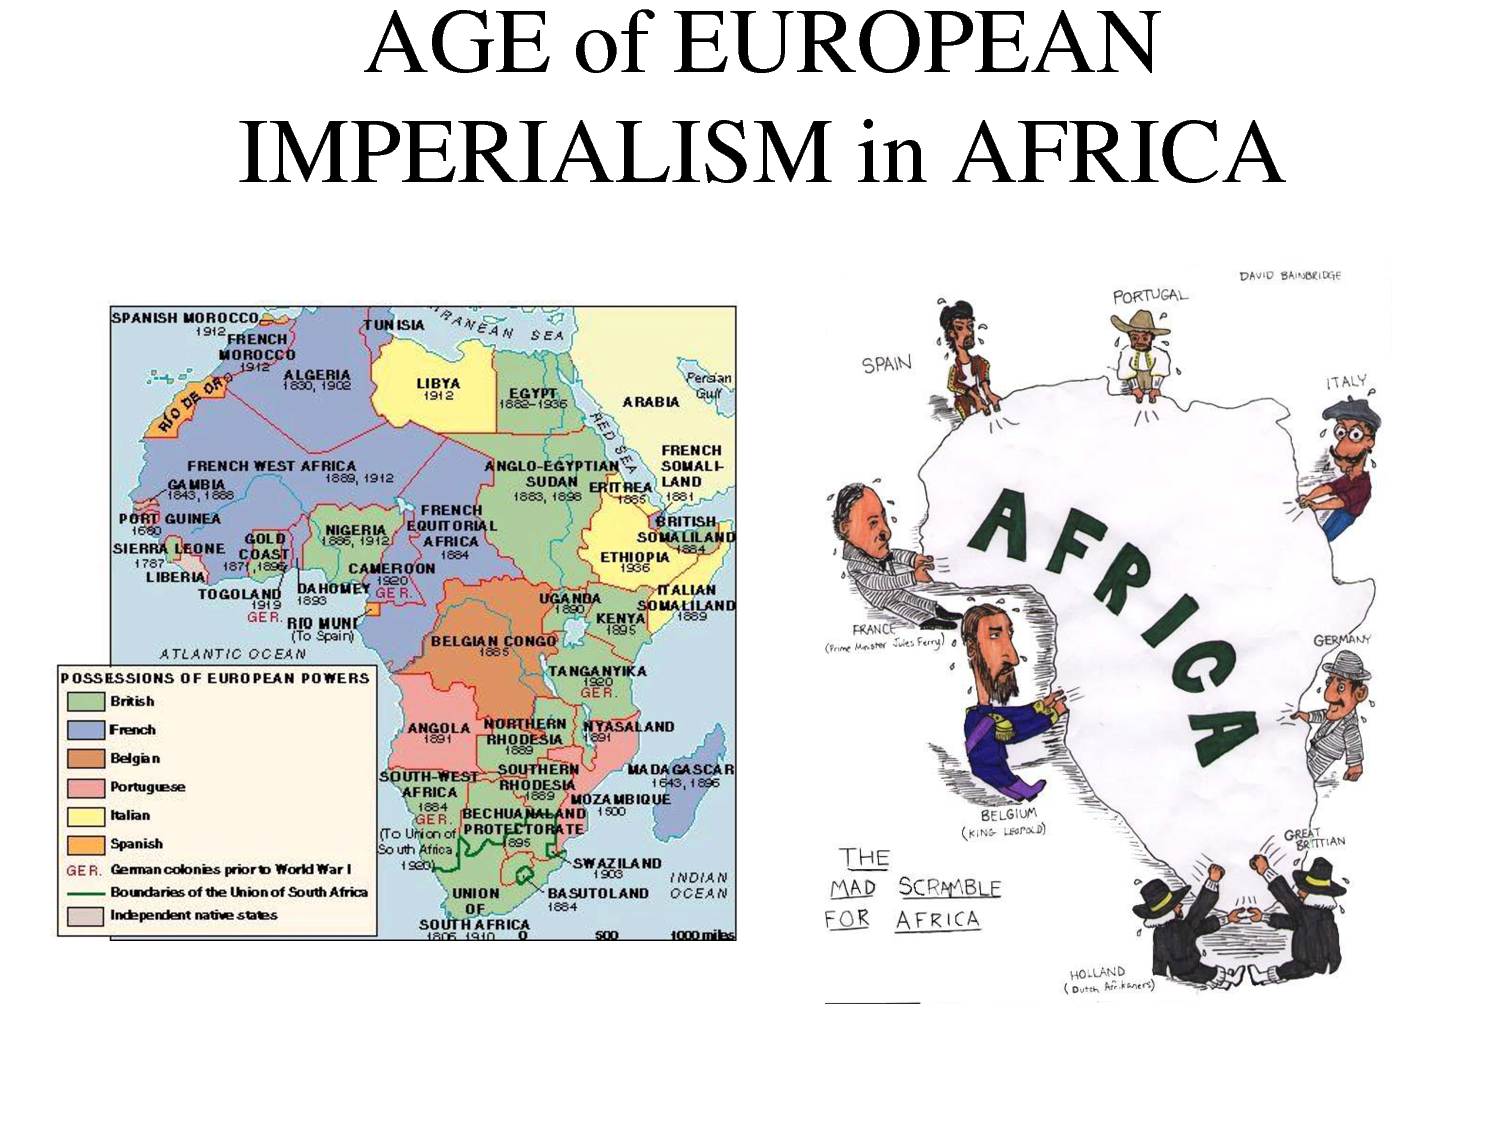 new imperialism essay There was a new money economy during the age of imperialism western capitalists urbanized mines and plantations, which were reliant on local labor.